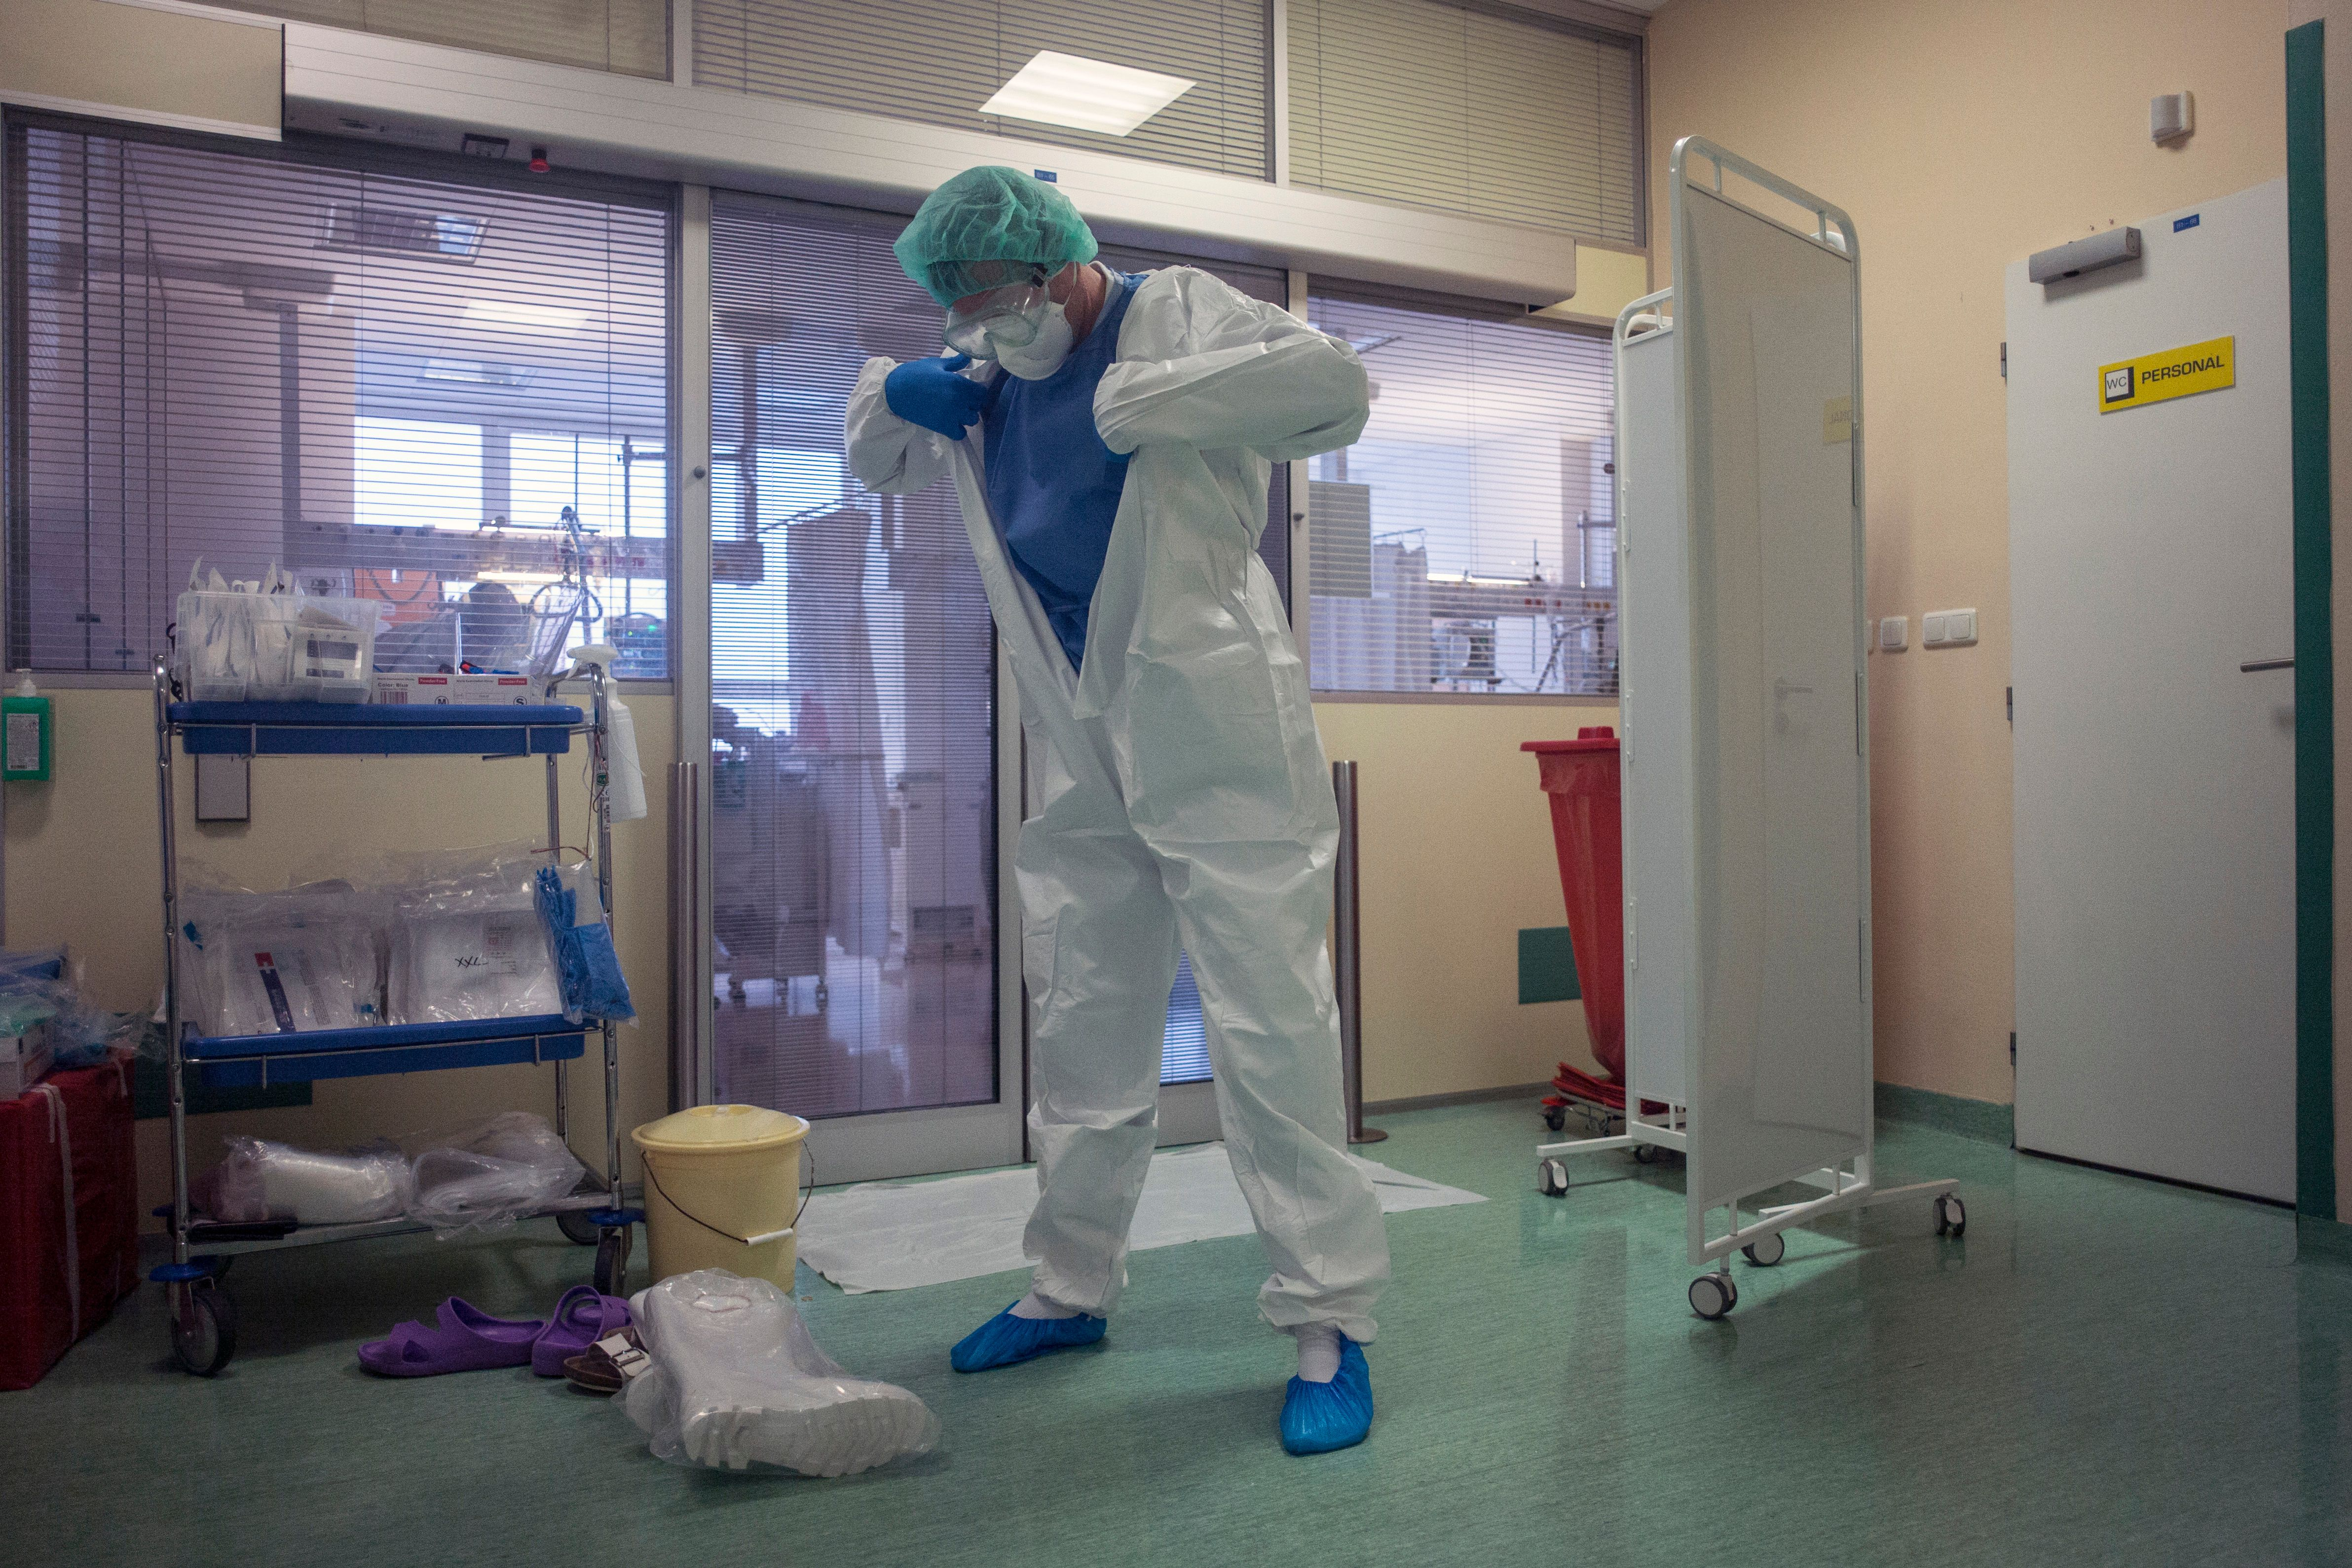 A healthcare worker puts on personal protective equipment (PPE) in front of the room for Covid-19 patients in an intensive care unit (ICU) at Thomayer hospital on October 14, in Prague.